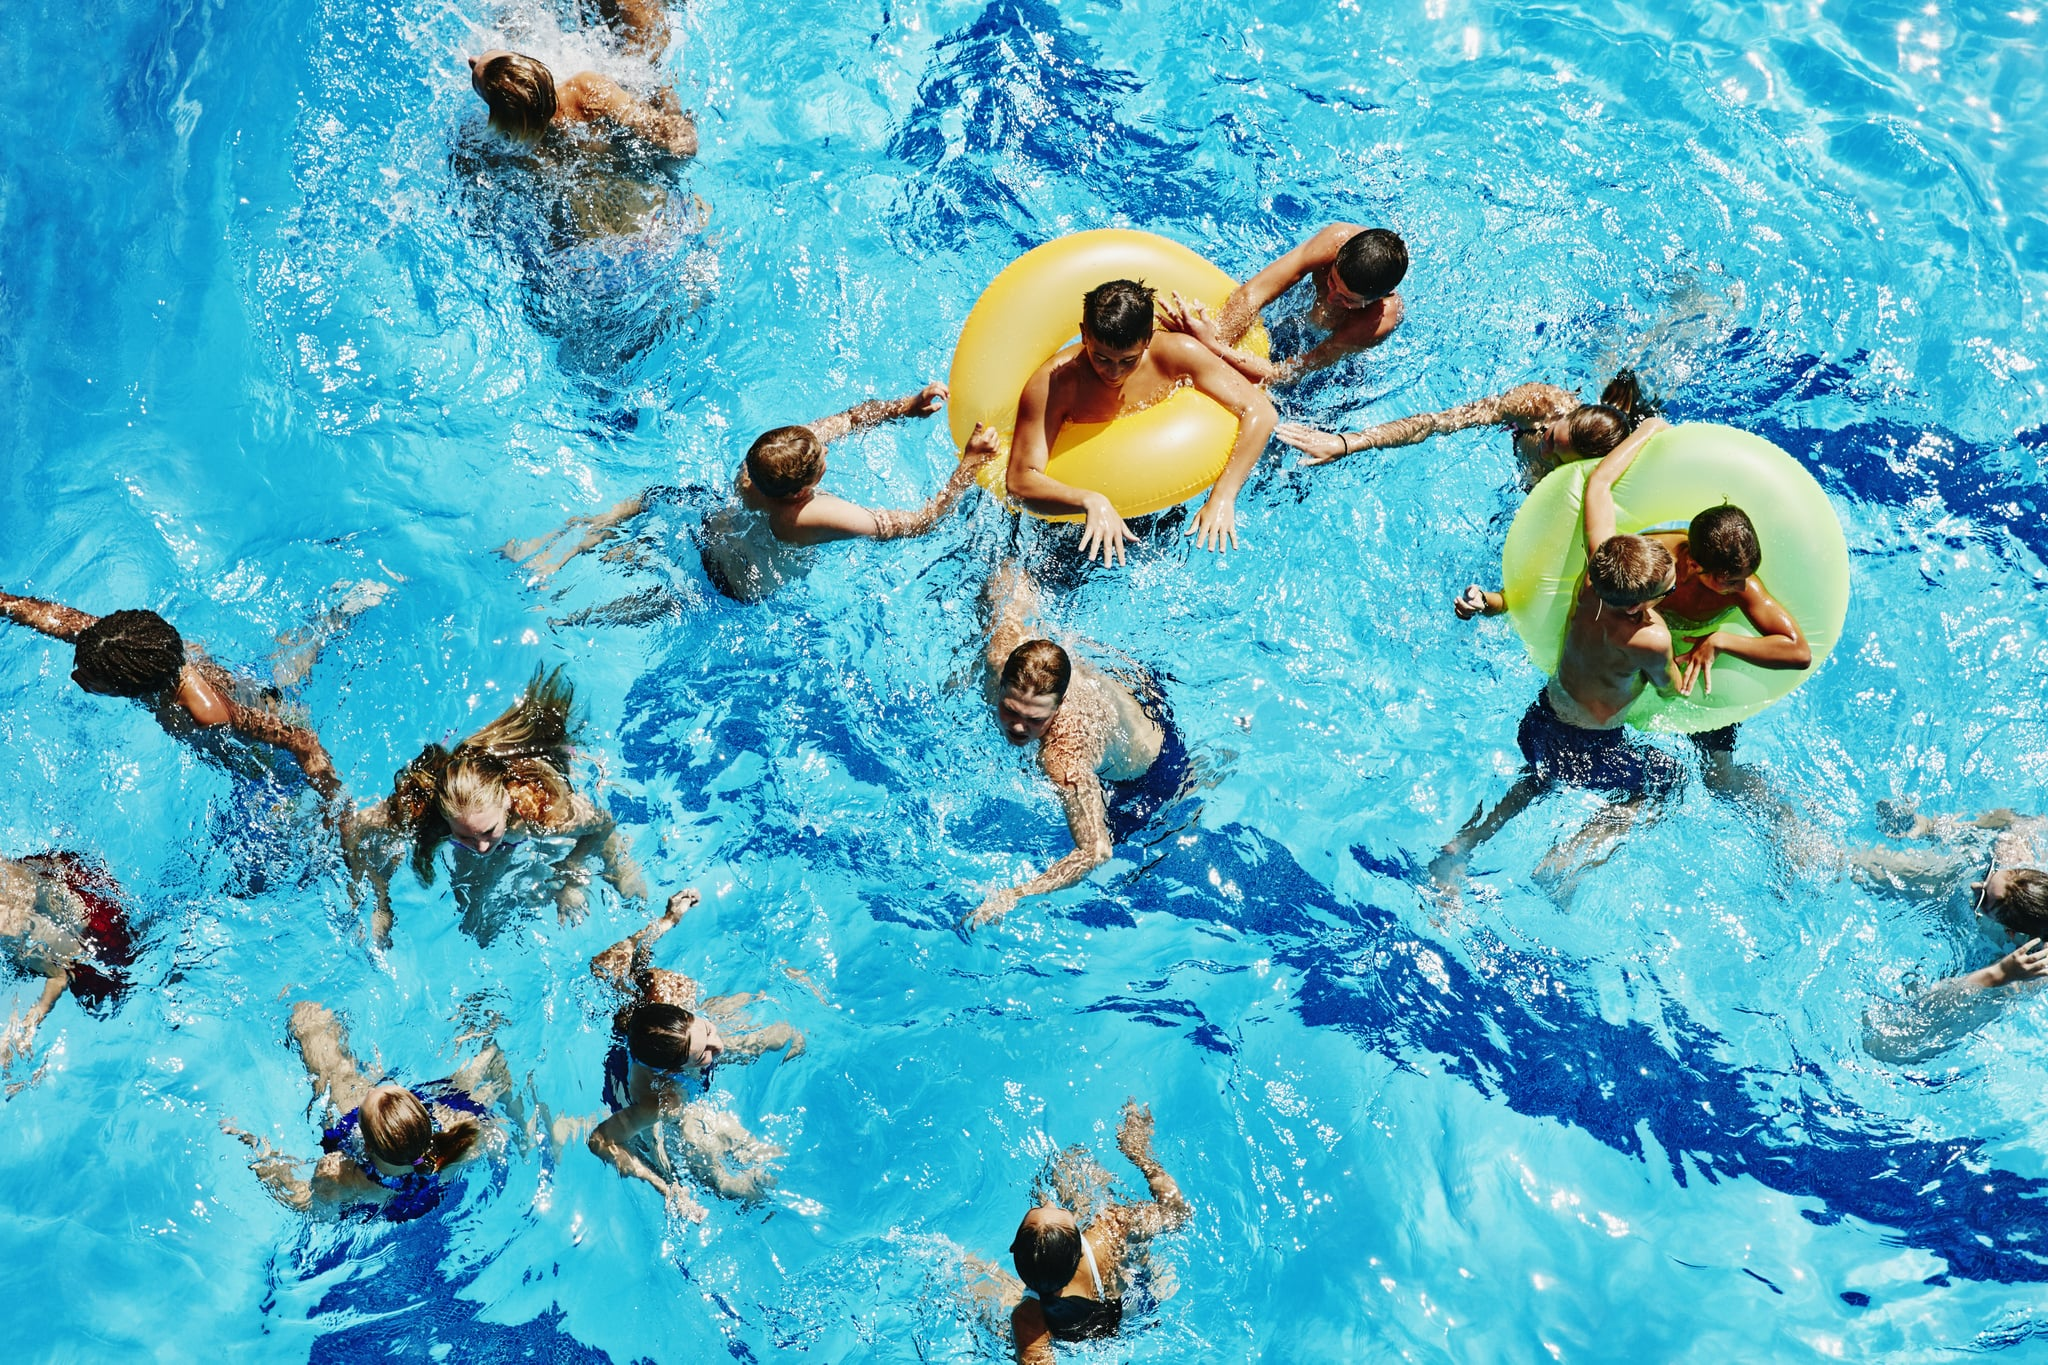 Group of kids playing together in outdoor pool overhead view